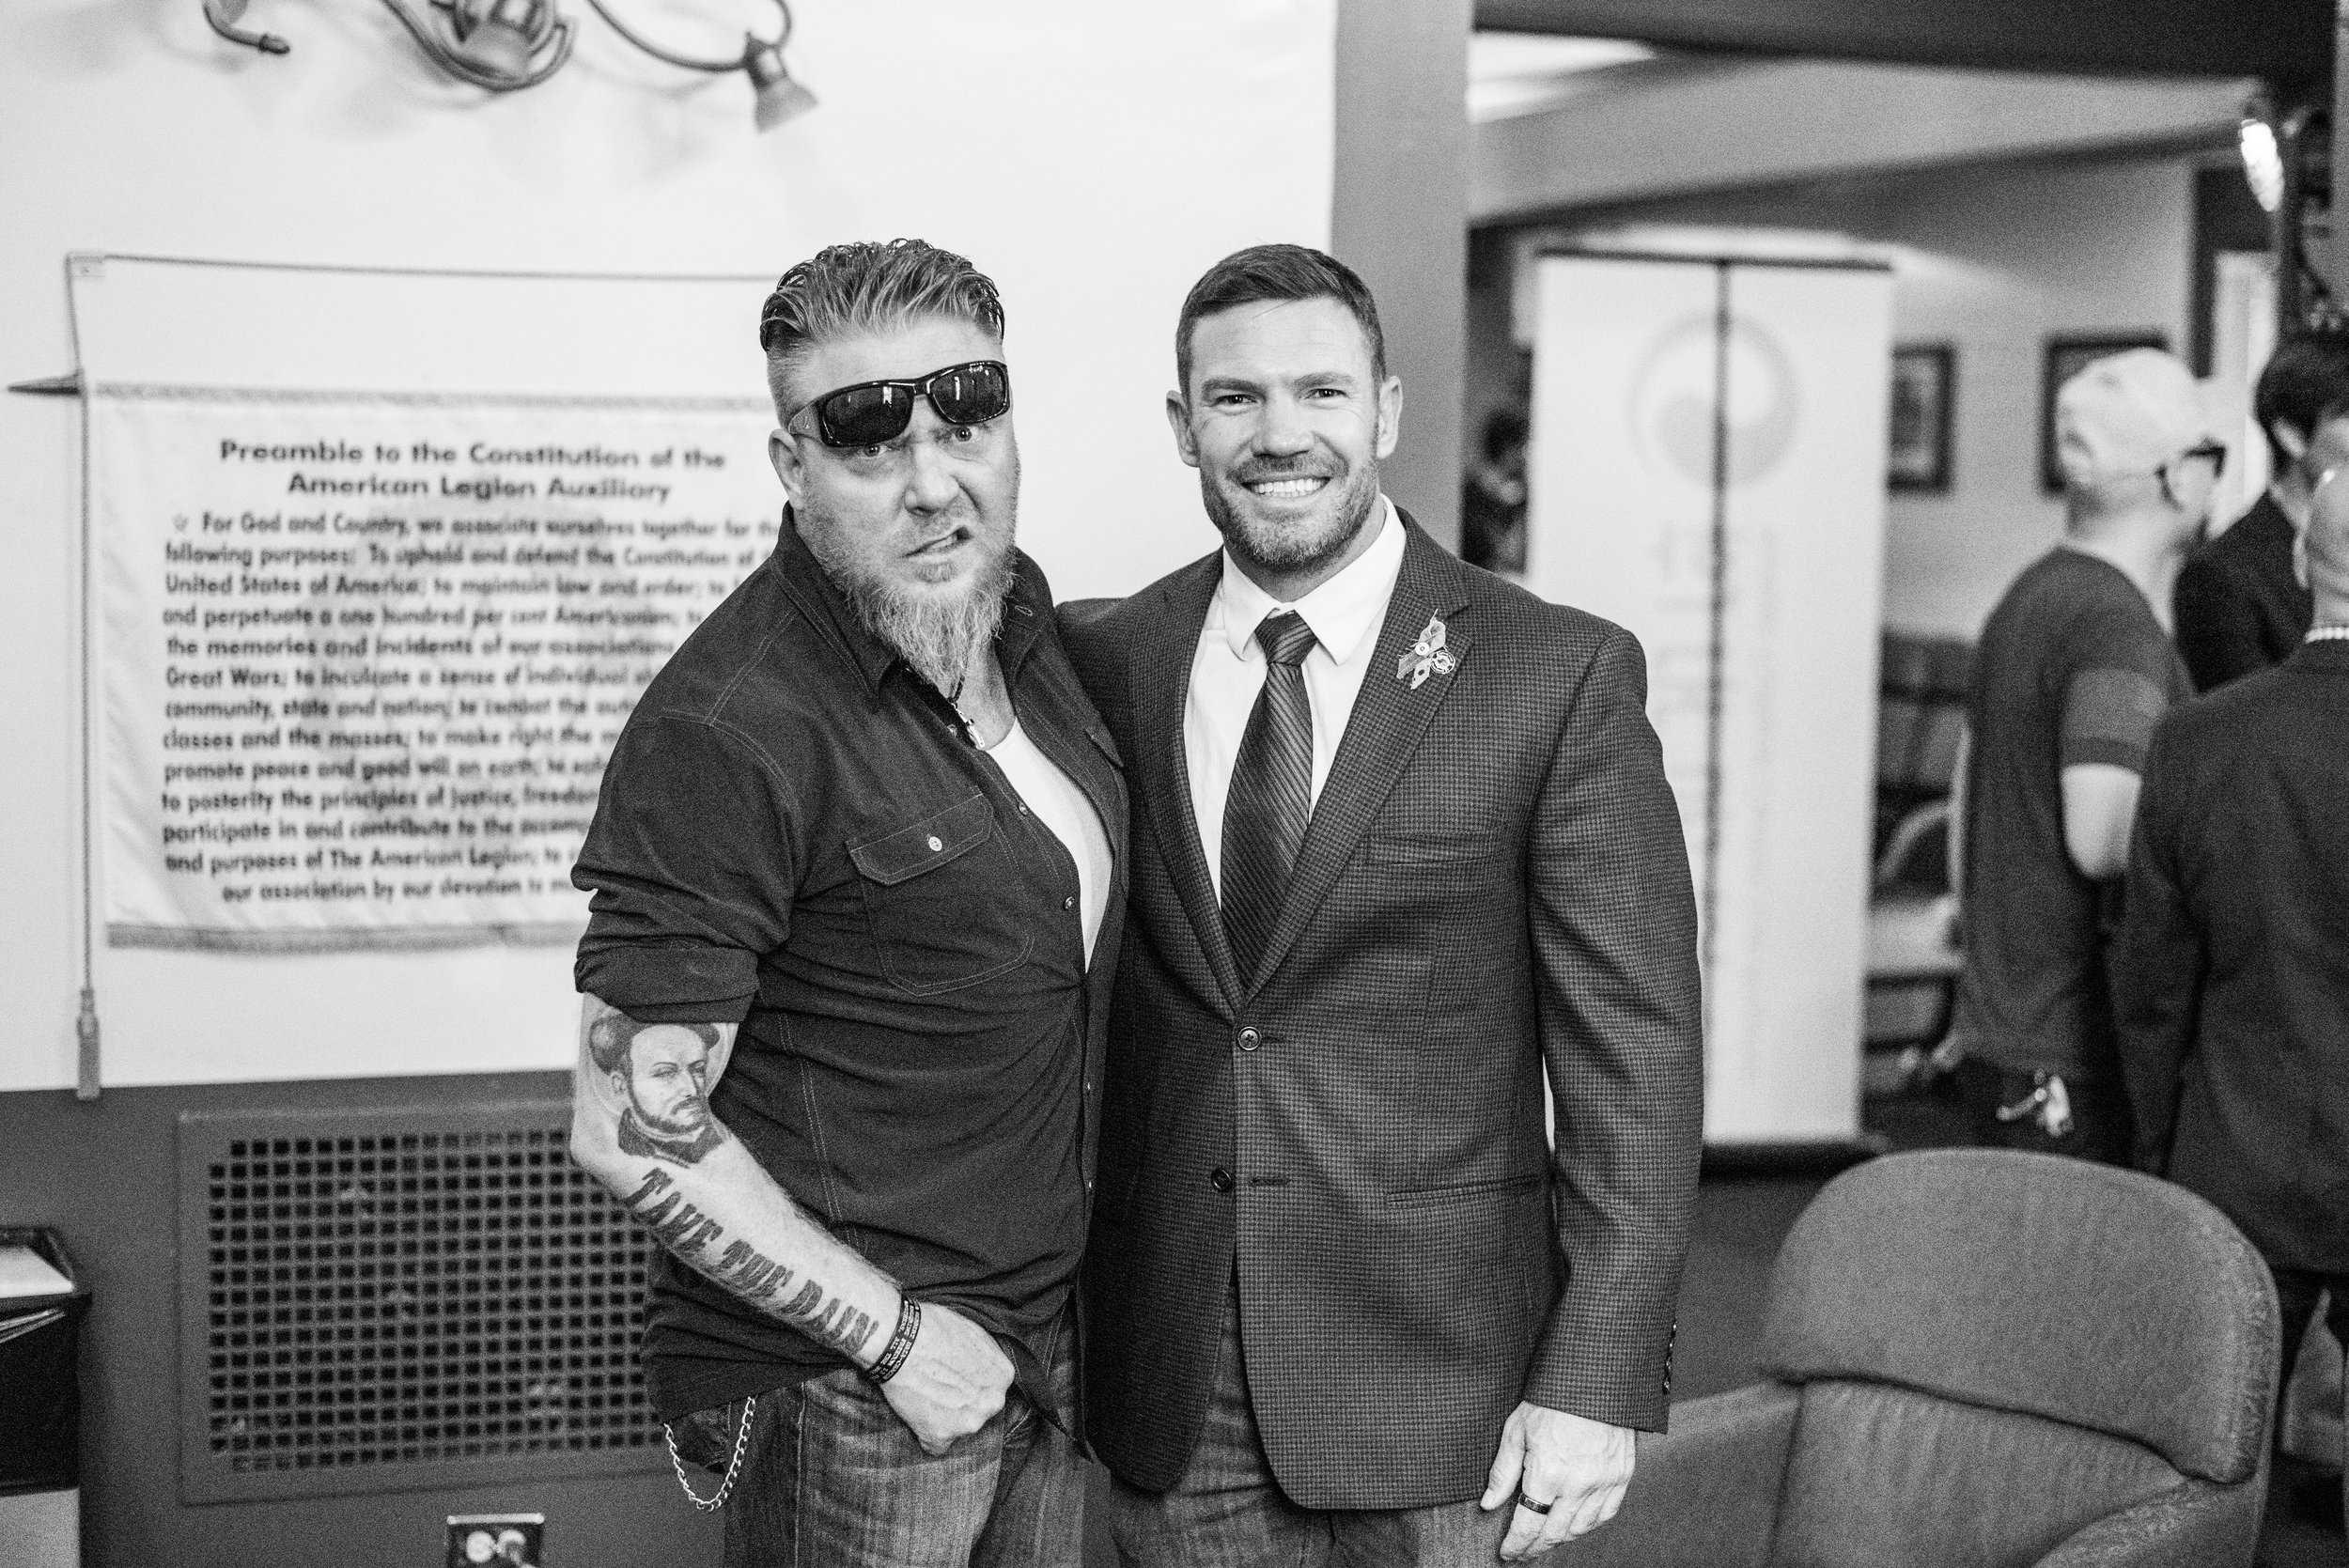 """Nate with Boone Cutler, host of """"Tipping Point"""" a nationally syndicated radio show that highlights veteran issues on a weekly basis."""